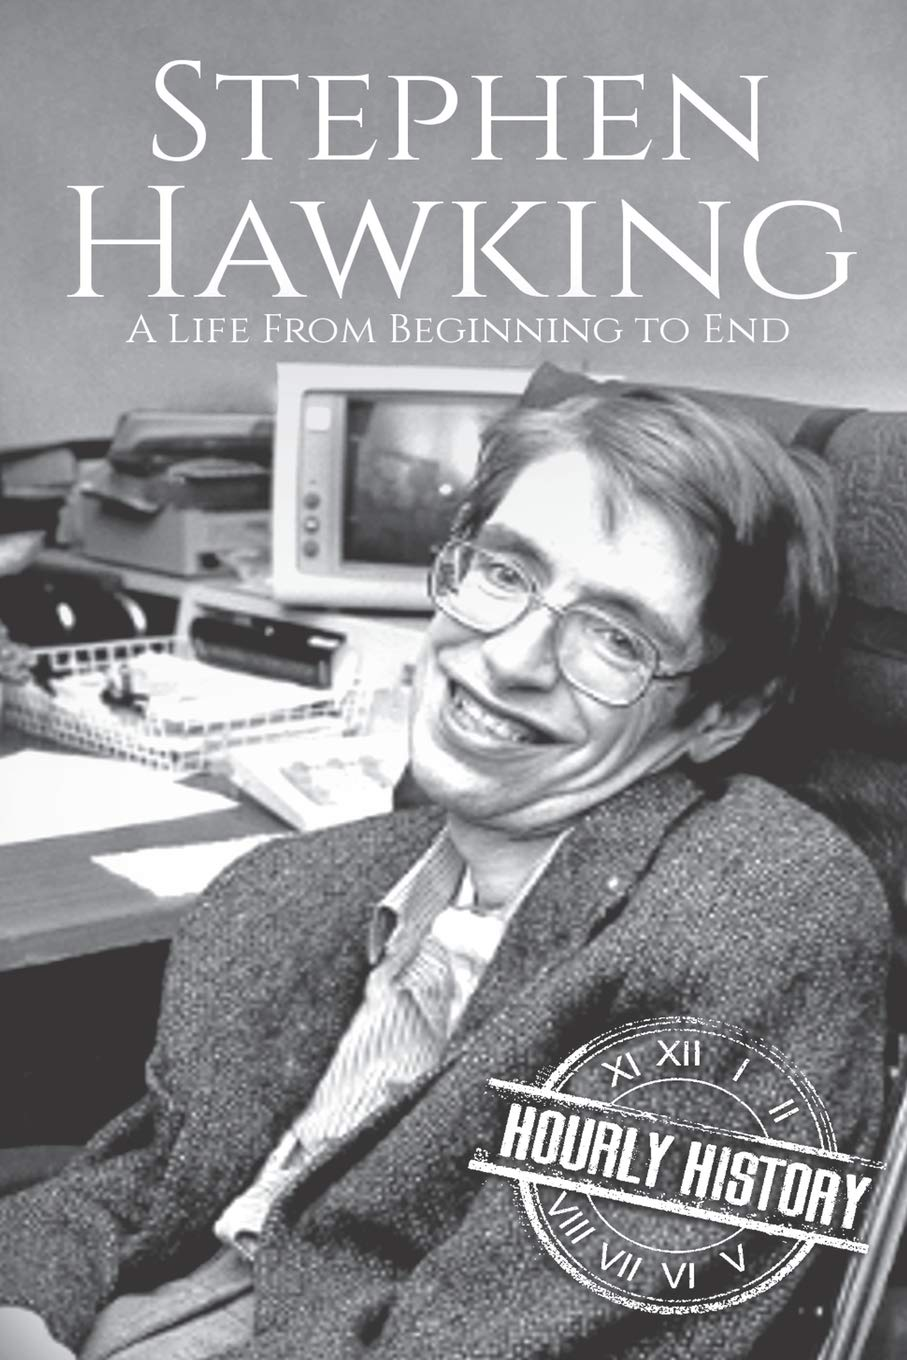 Stephen Hawking: A Life From Beginning to End